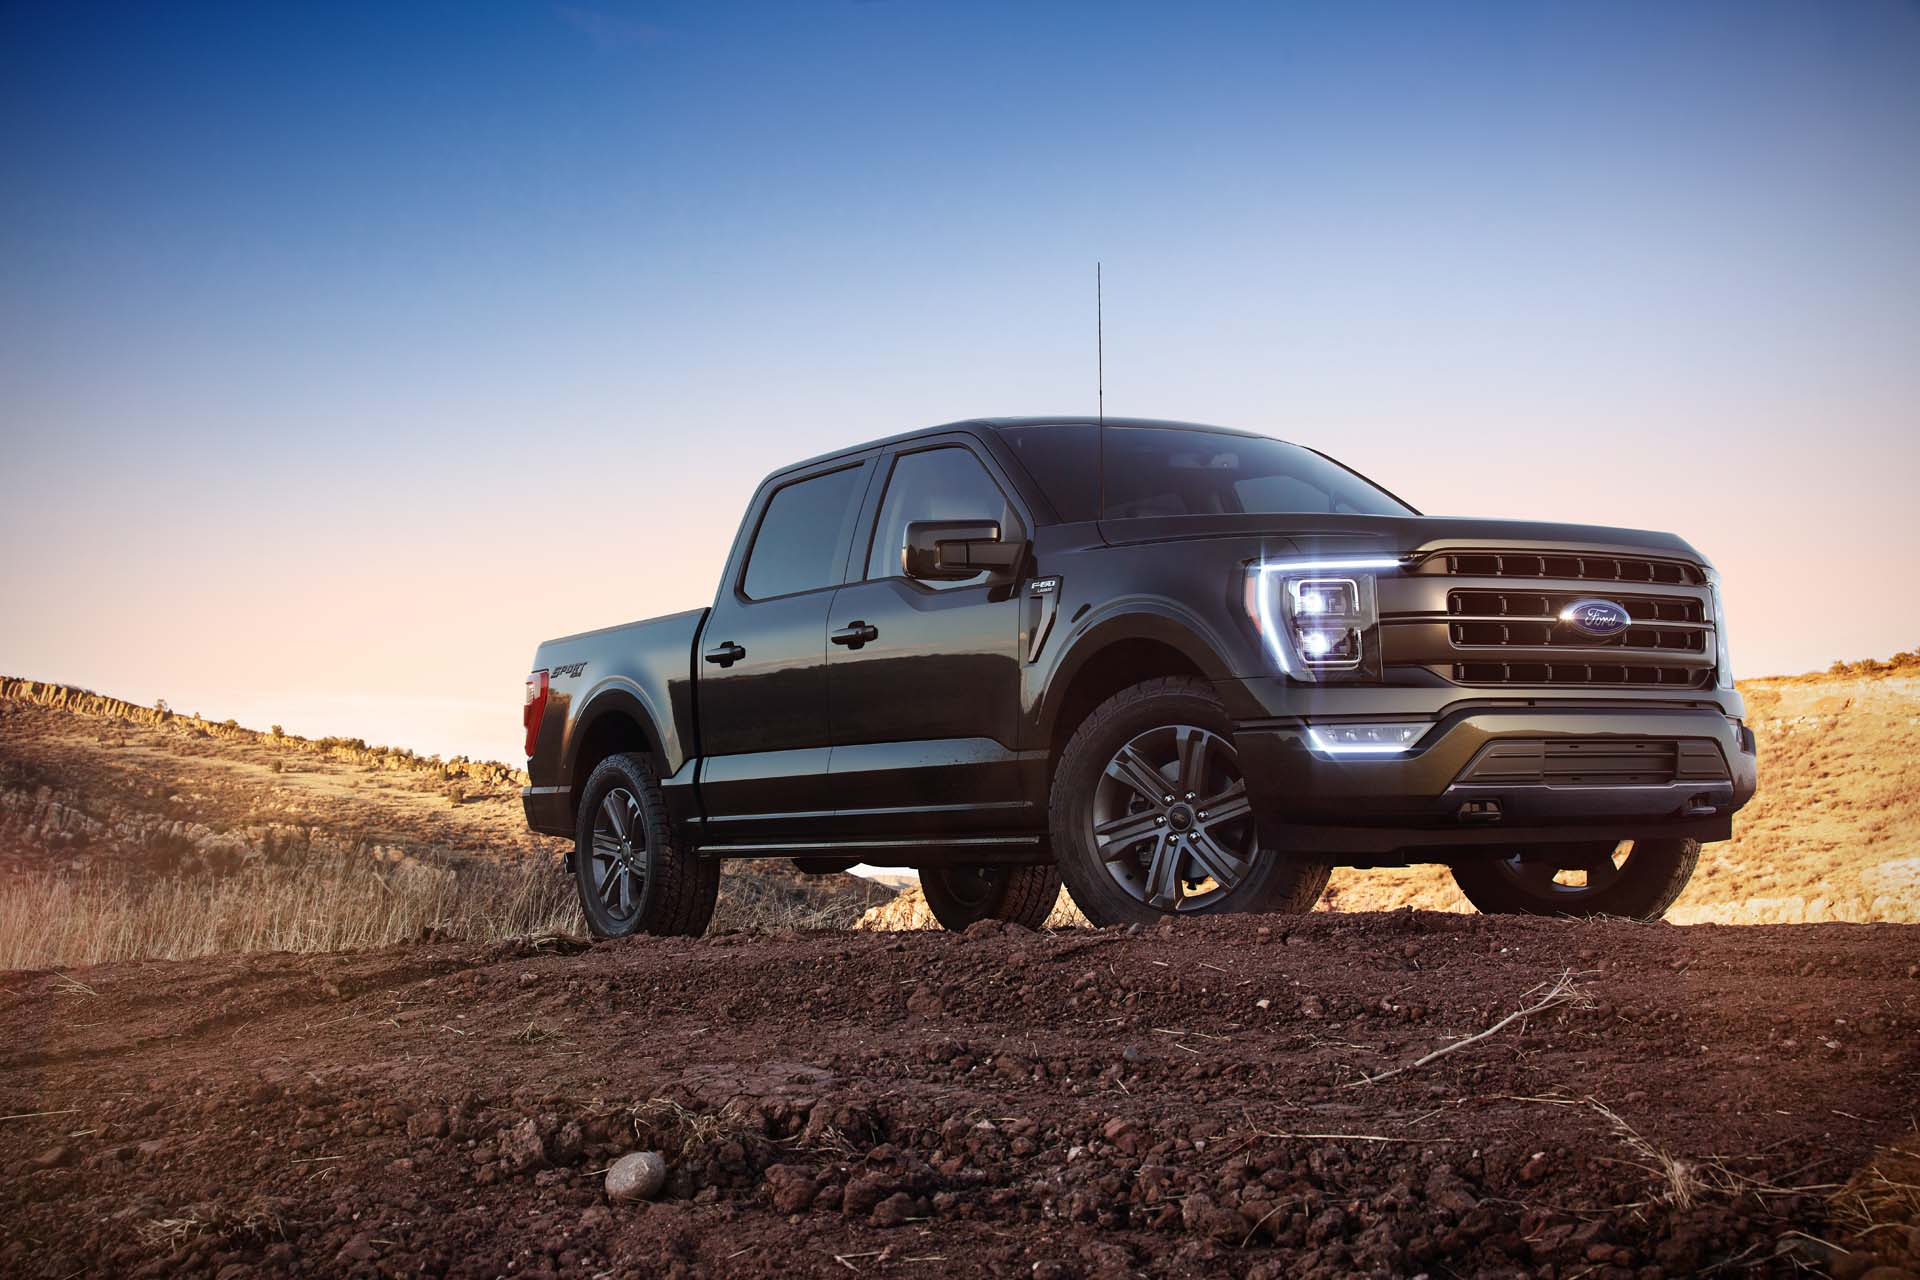 2021 ford f150 preview  the car gossip